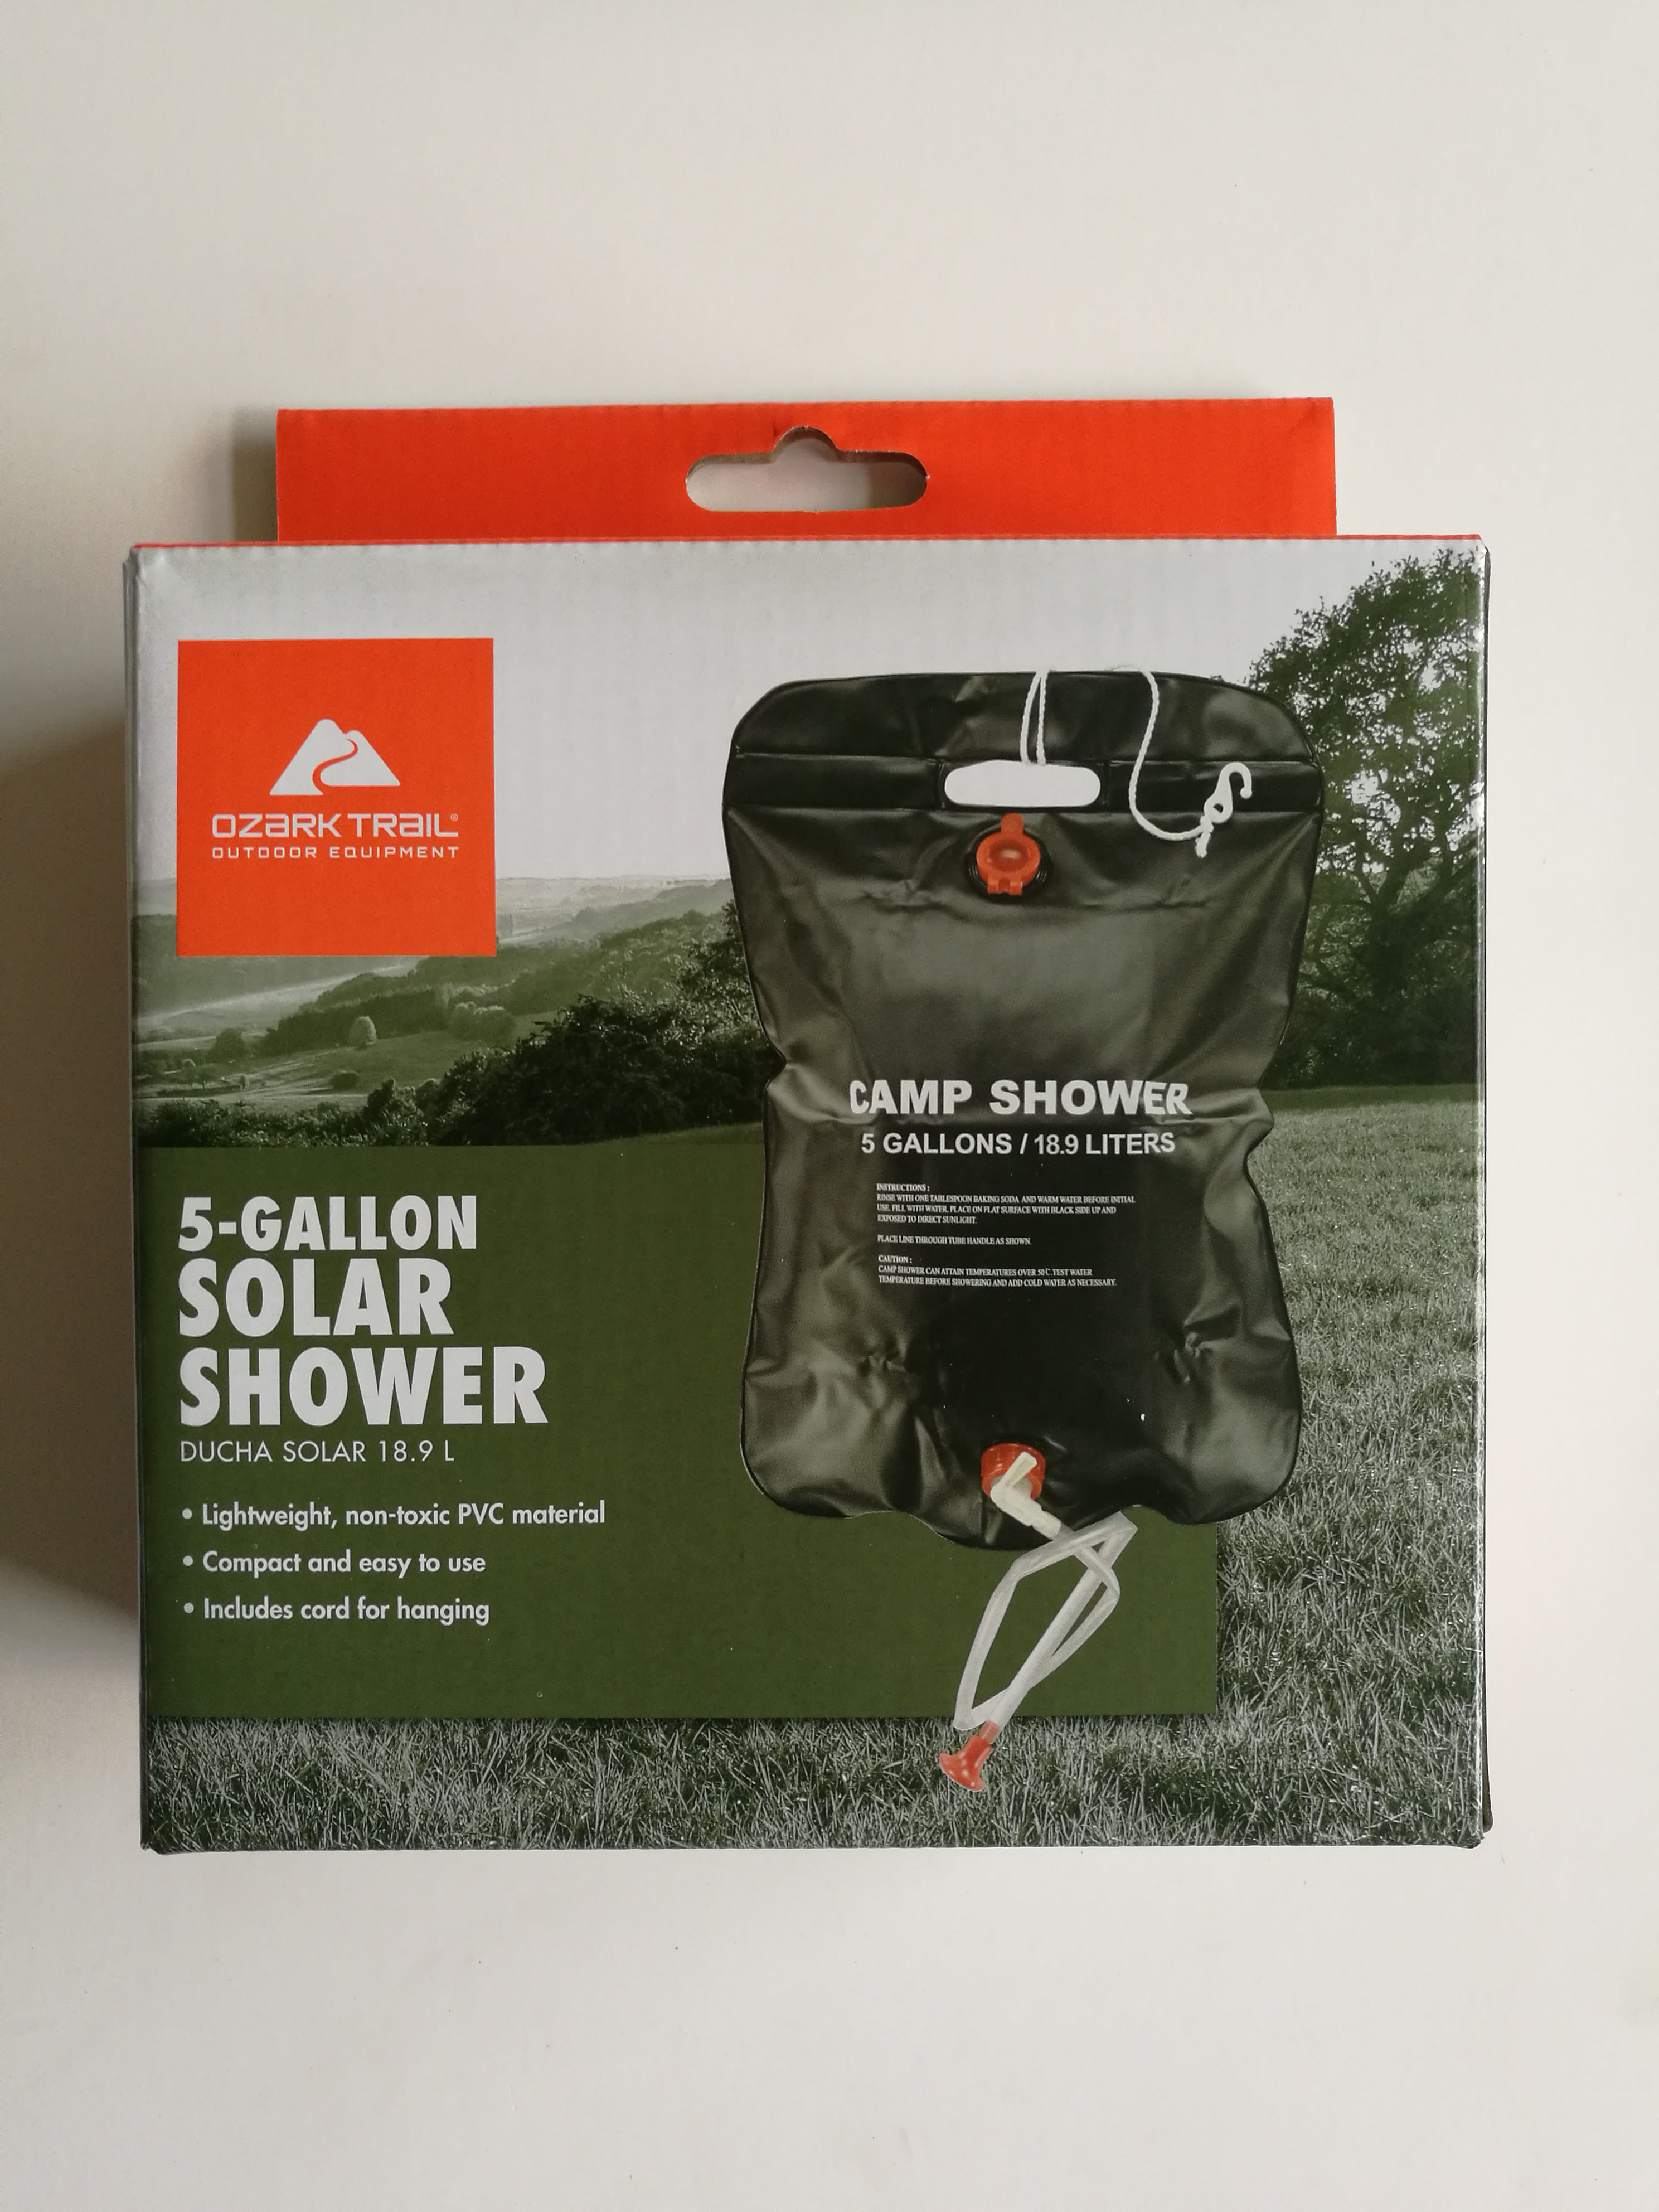 Solar Shower Camping Shower Shower Bag With Shower Head Portable Camping Shower Pool Hot Water Shower Outdoor Shower Pool Show Campcookingsupplies